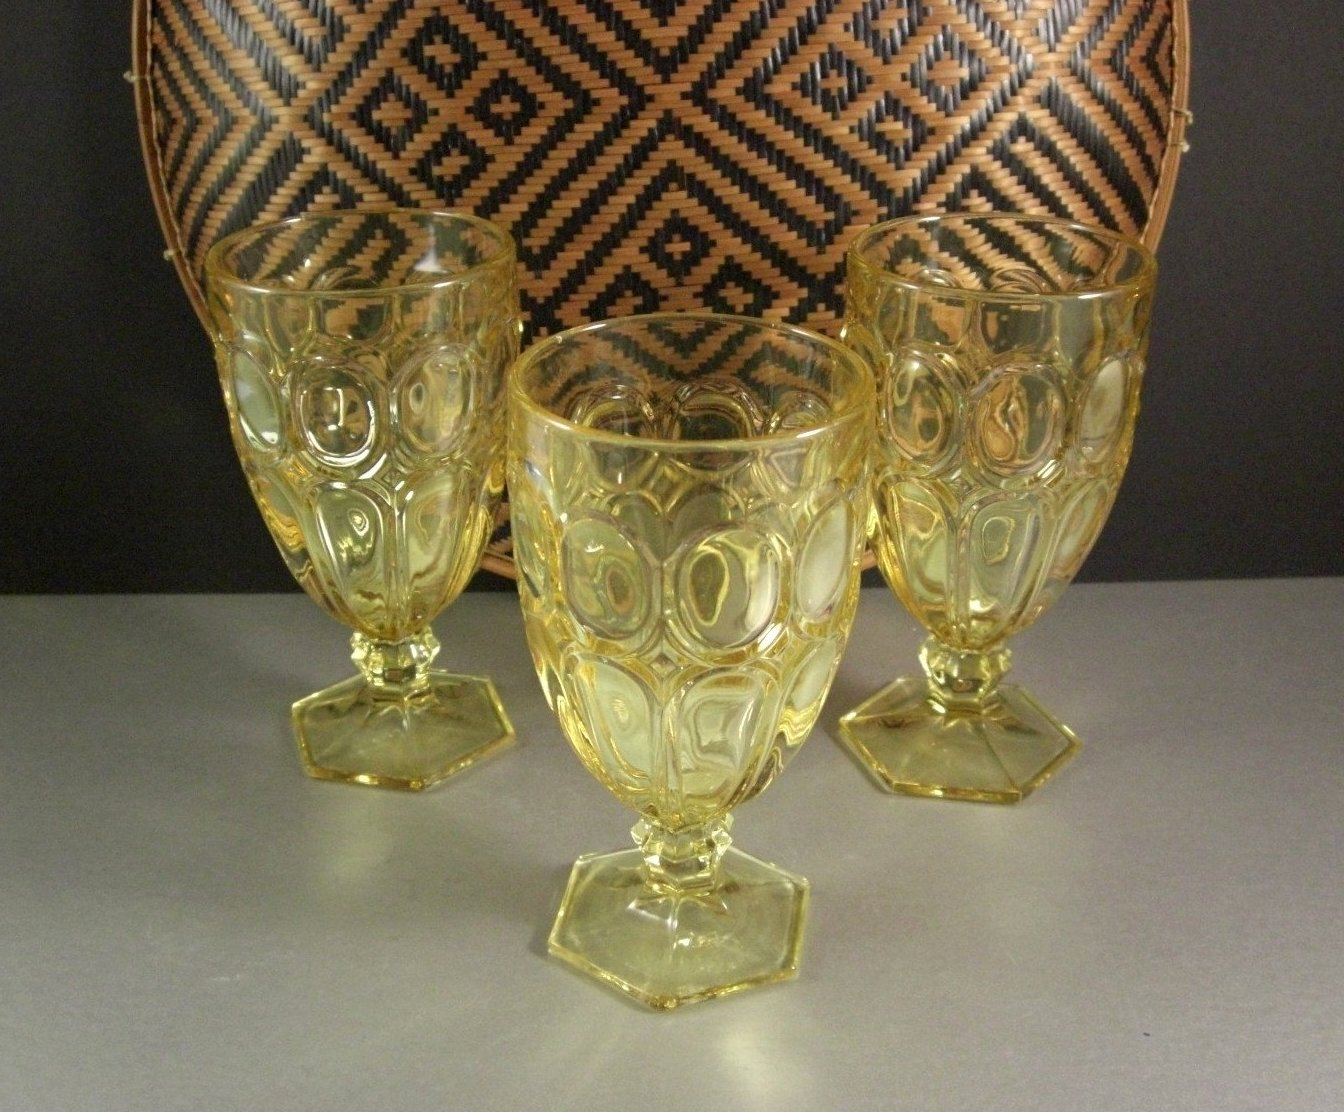 3 Vintage Fostoria Moonstone Yellow Iced Tea Glasses Goblets / HTF Color / Set o